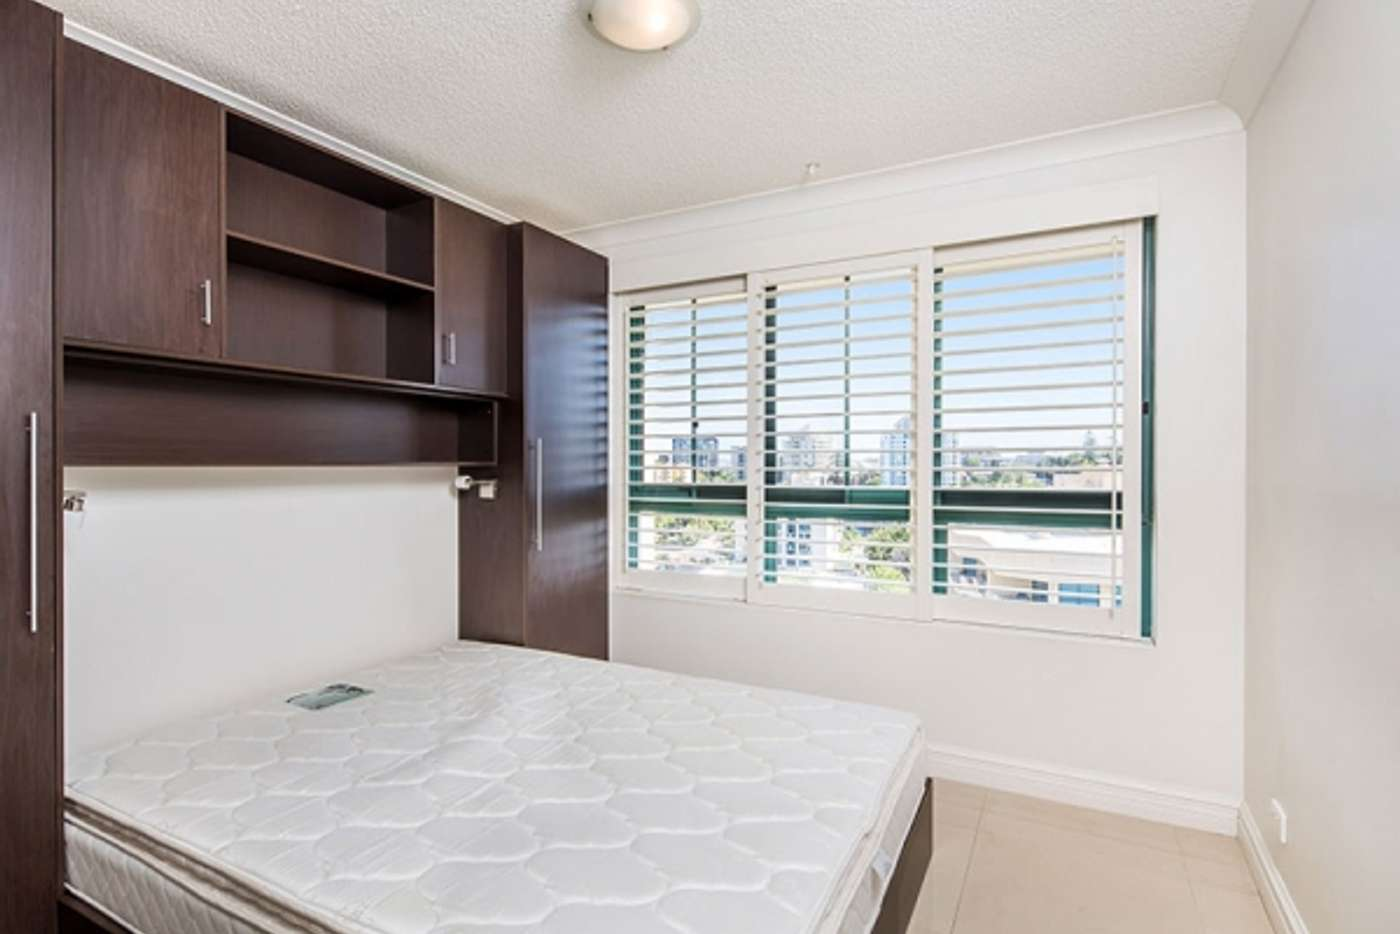 Sixth view of Homely apartment listing, 1 Goodwin Street, Kangaroo Point QLD 4169